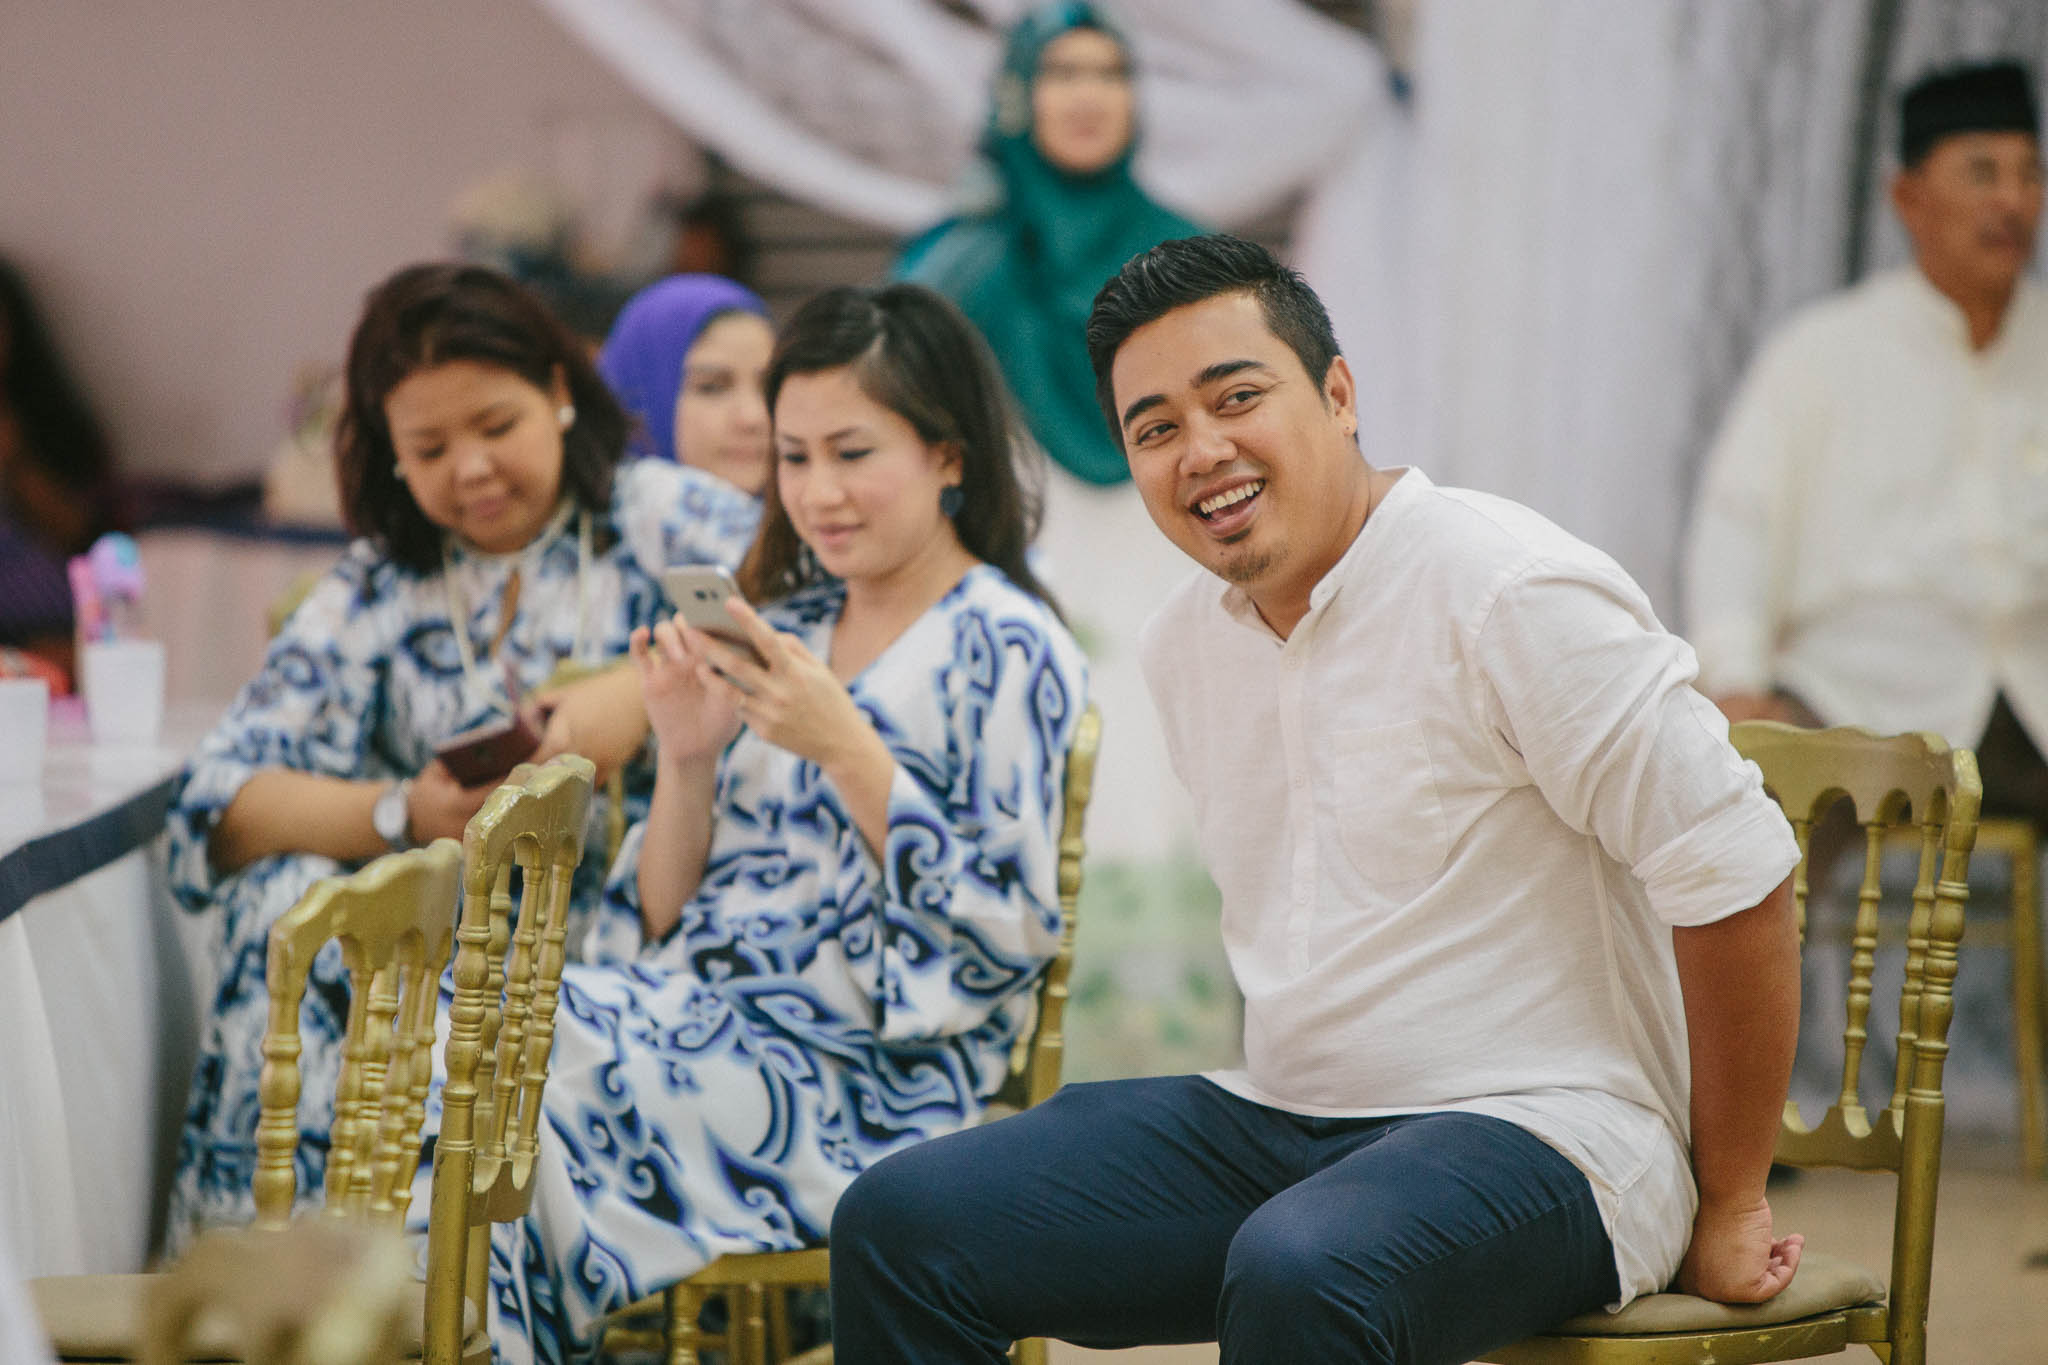 singapore-wedding-photographer-mega-asyraf-79.jpg